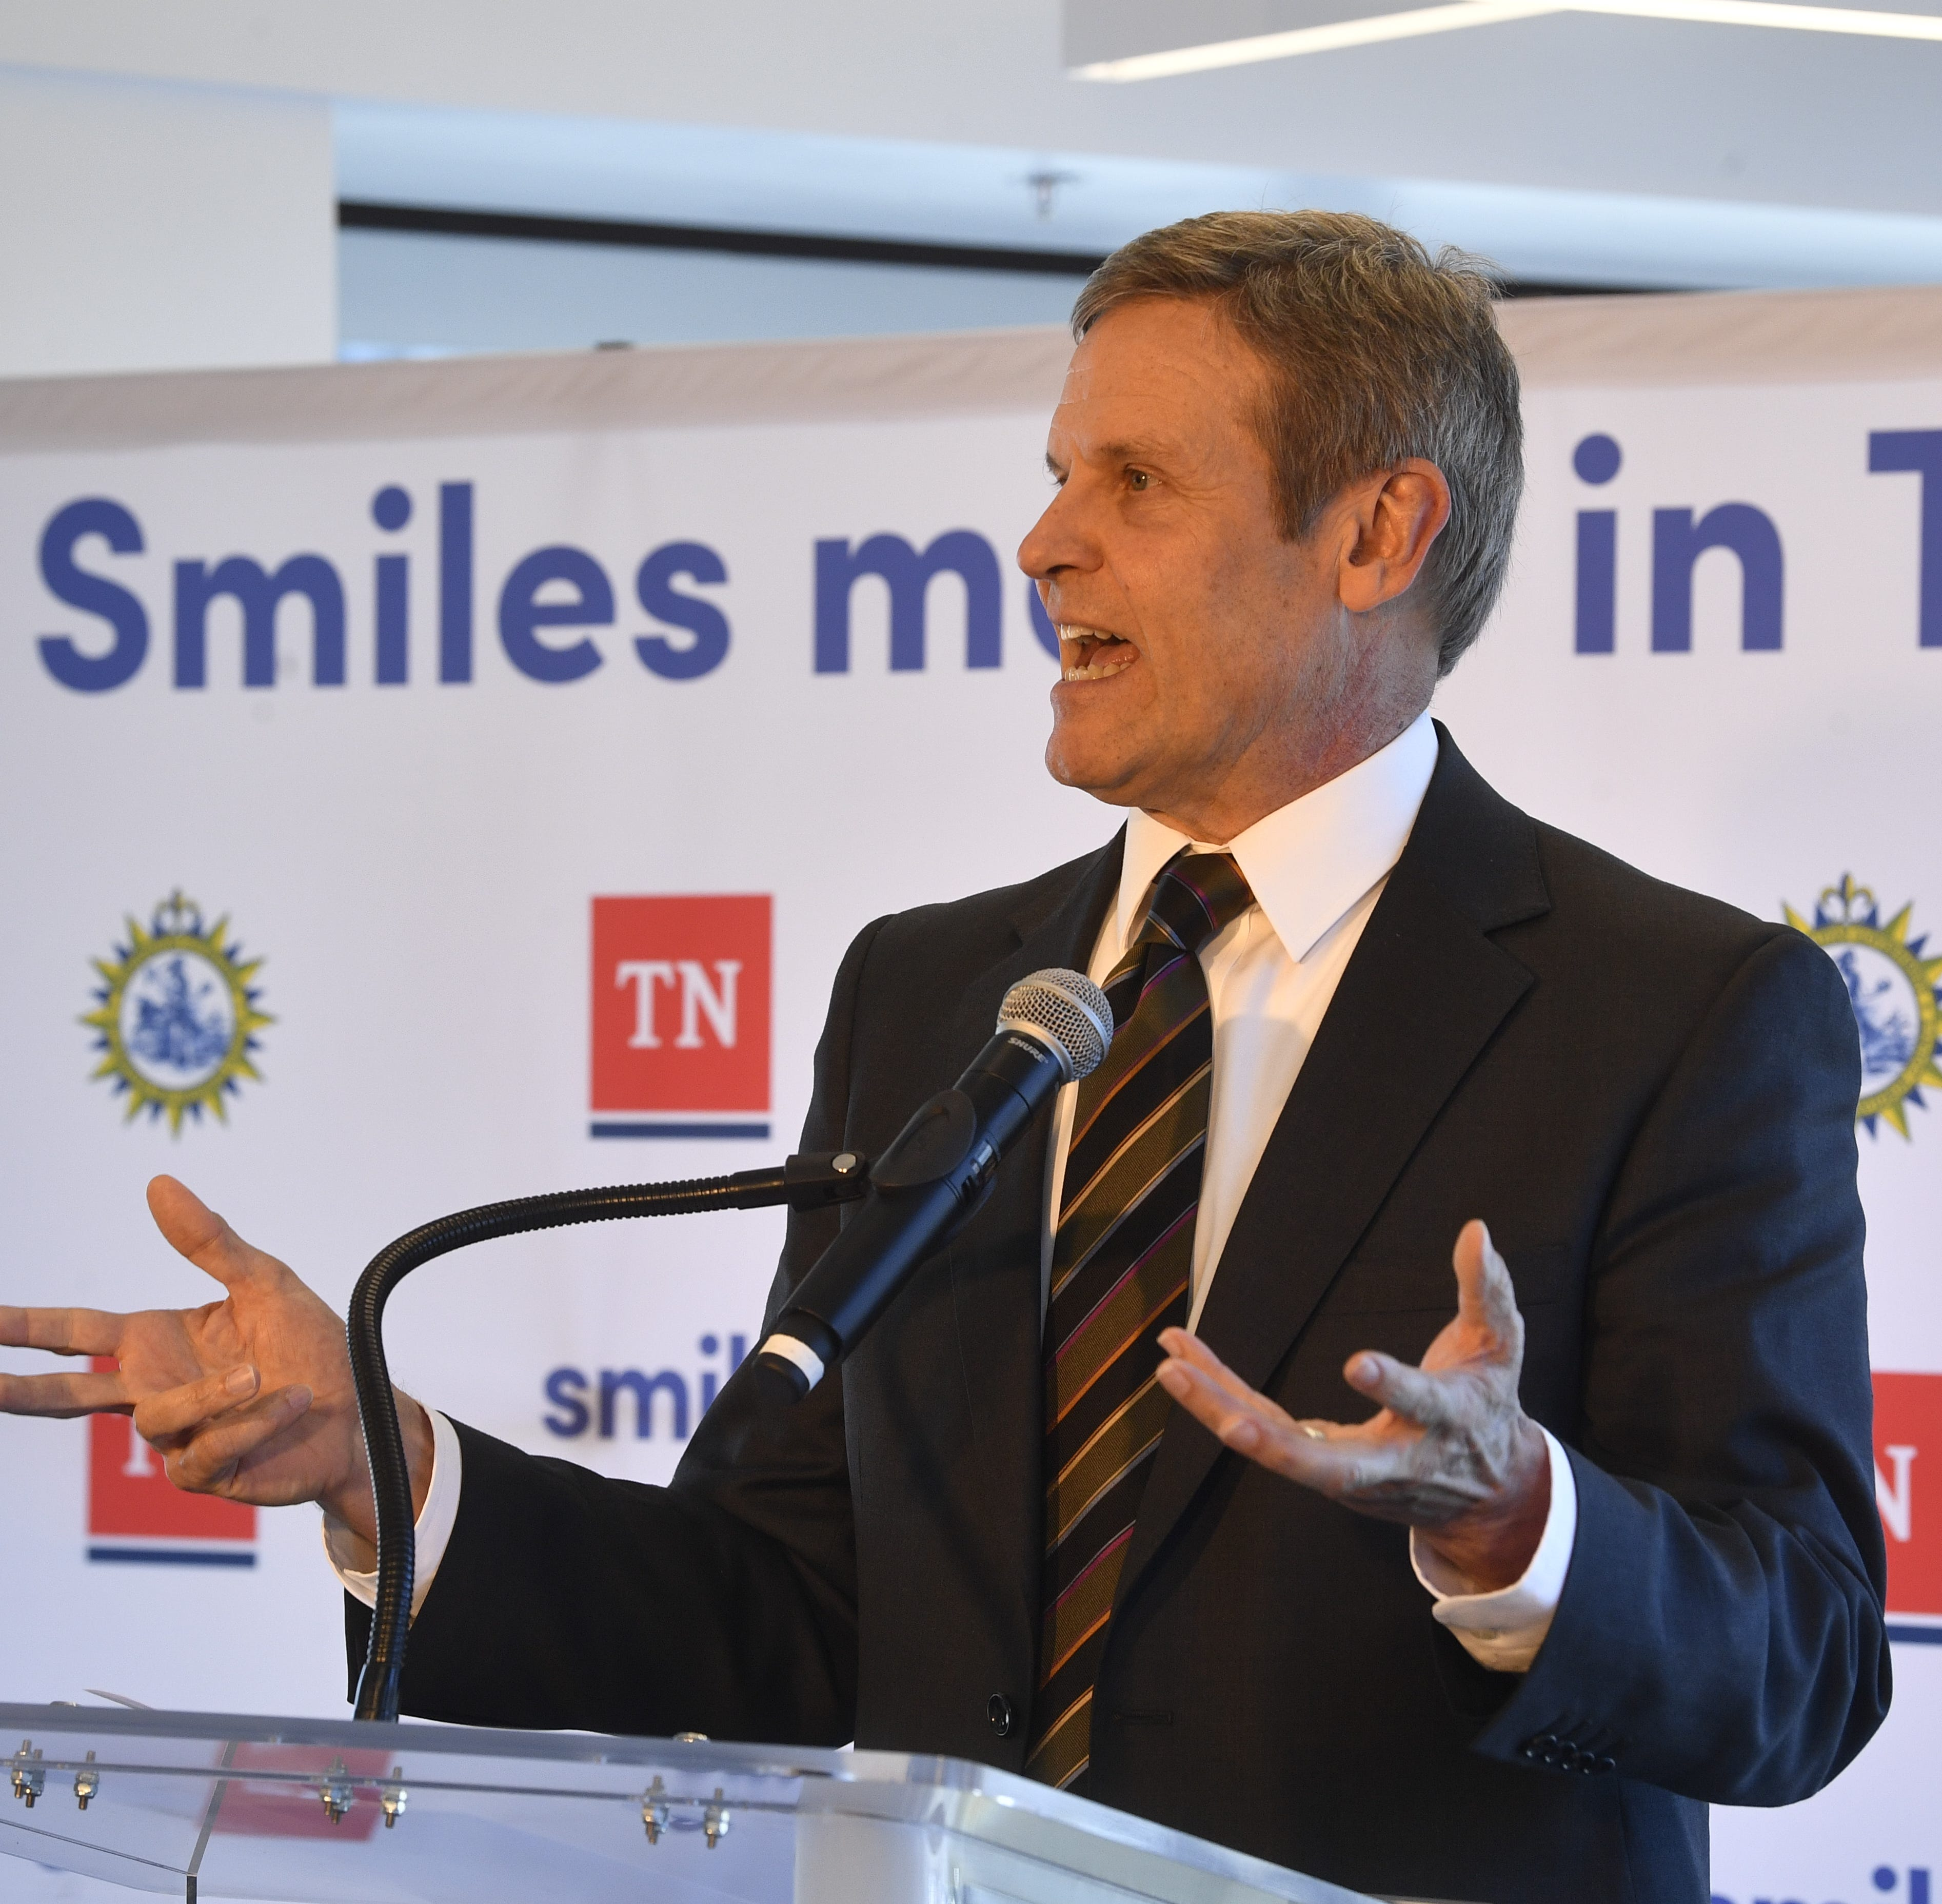 SmileDirectClub announces 2,010 new jobs, $217M investment in Nashville HQ